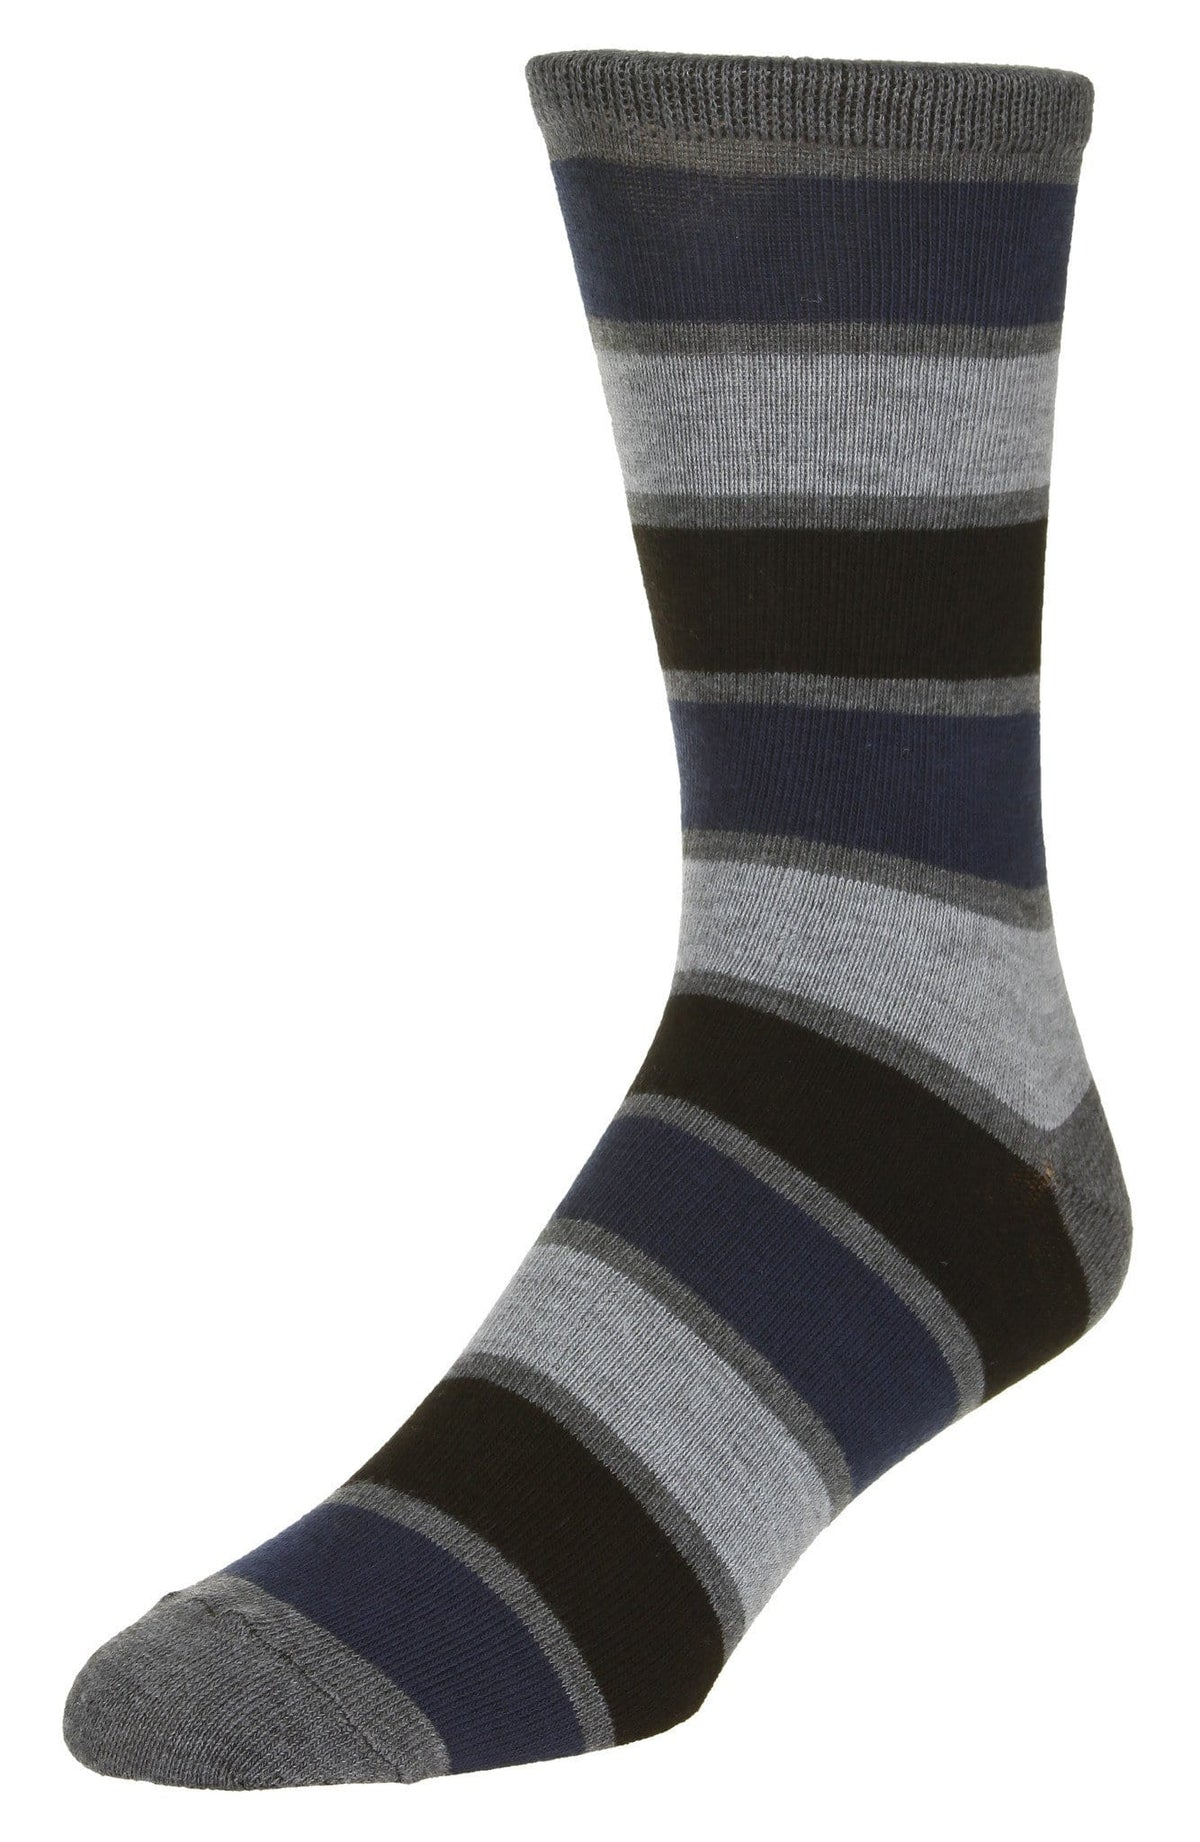 Casual Stripe Pattern Socks Men's Crew Sock Black-Navy-Grey